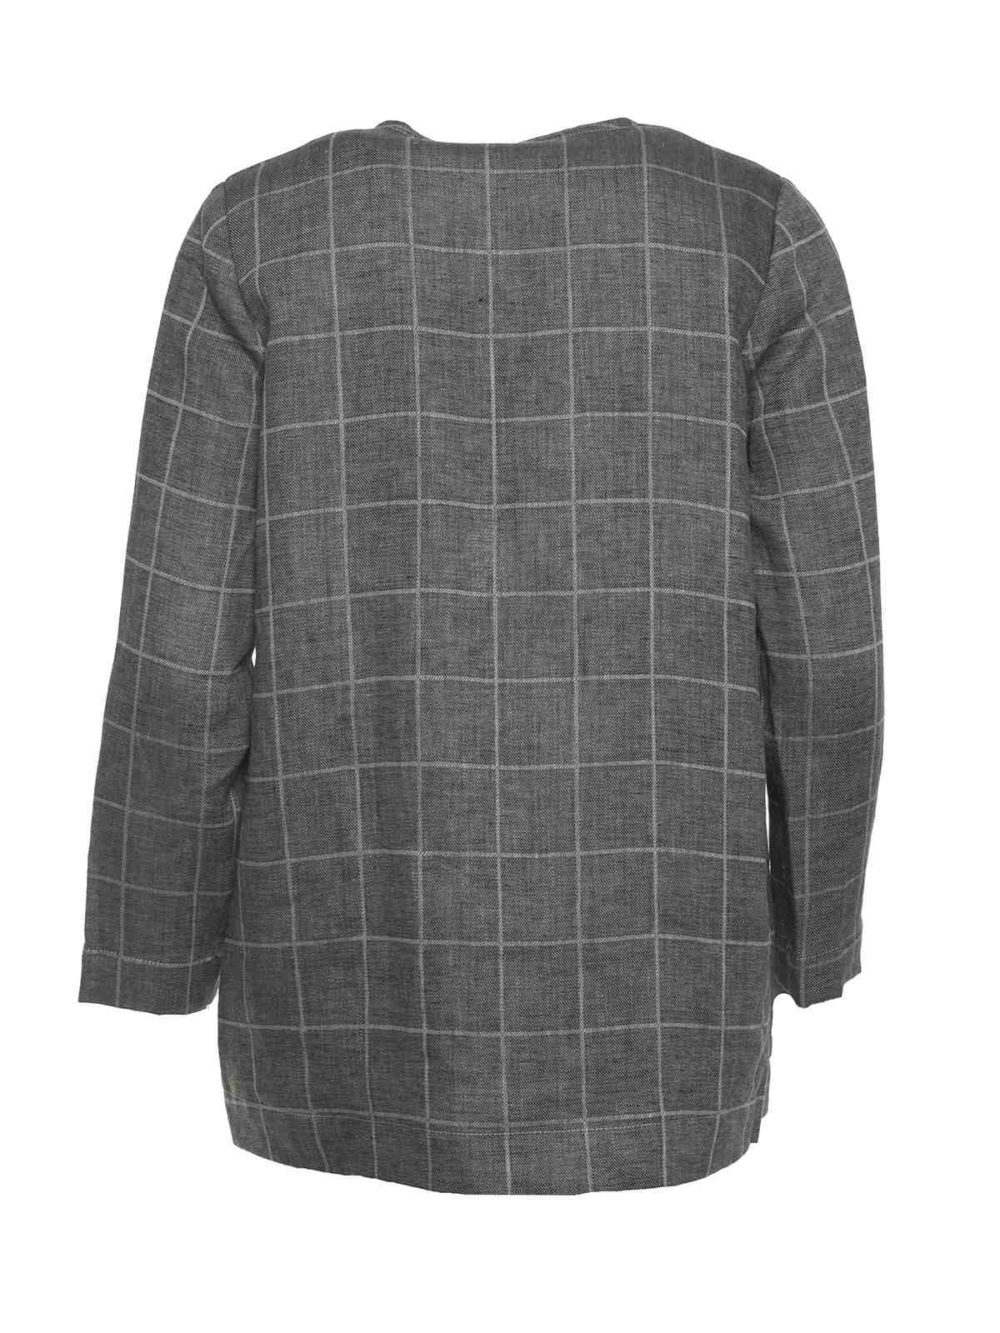 Jorgina Jacket Masai Clothing Katie Kerr Women's Clothing